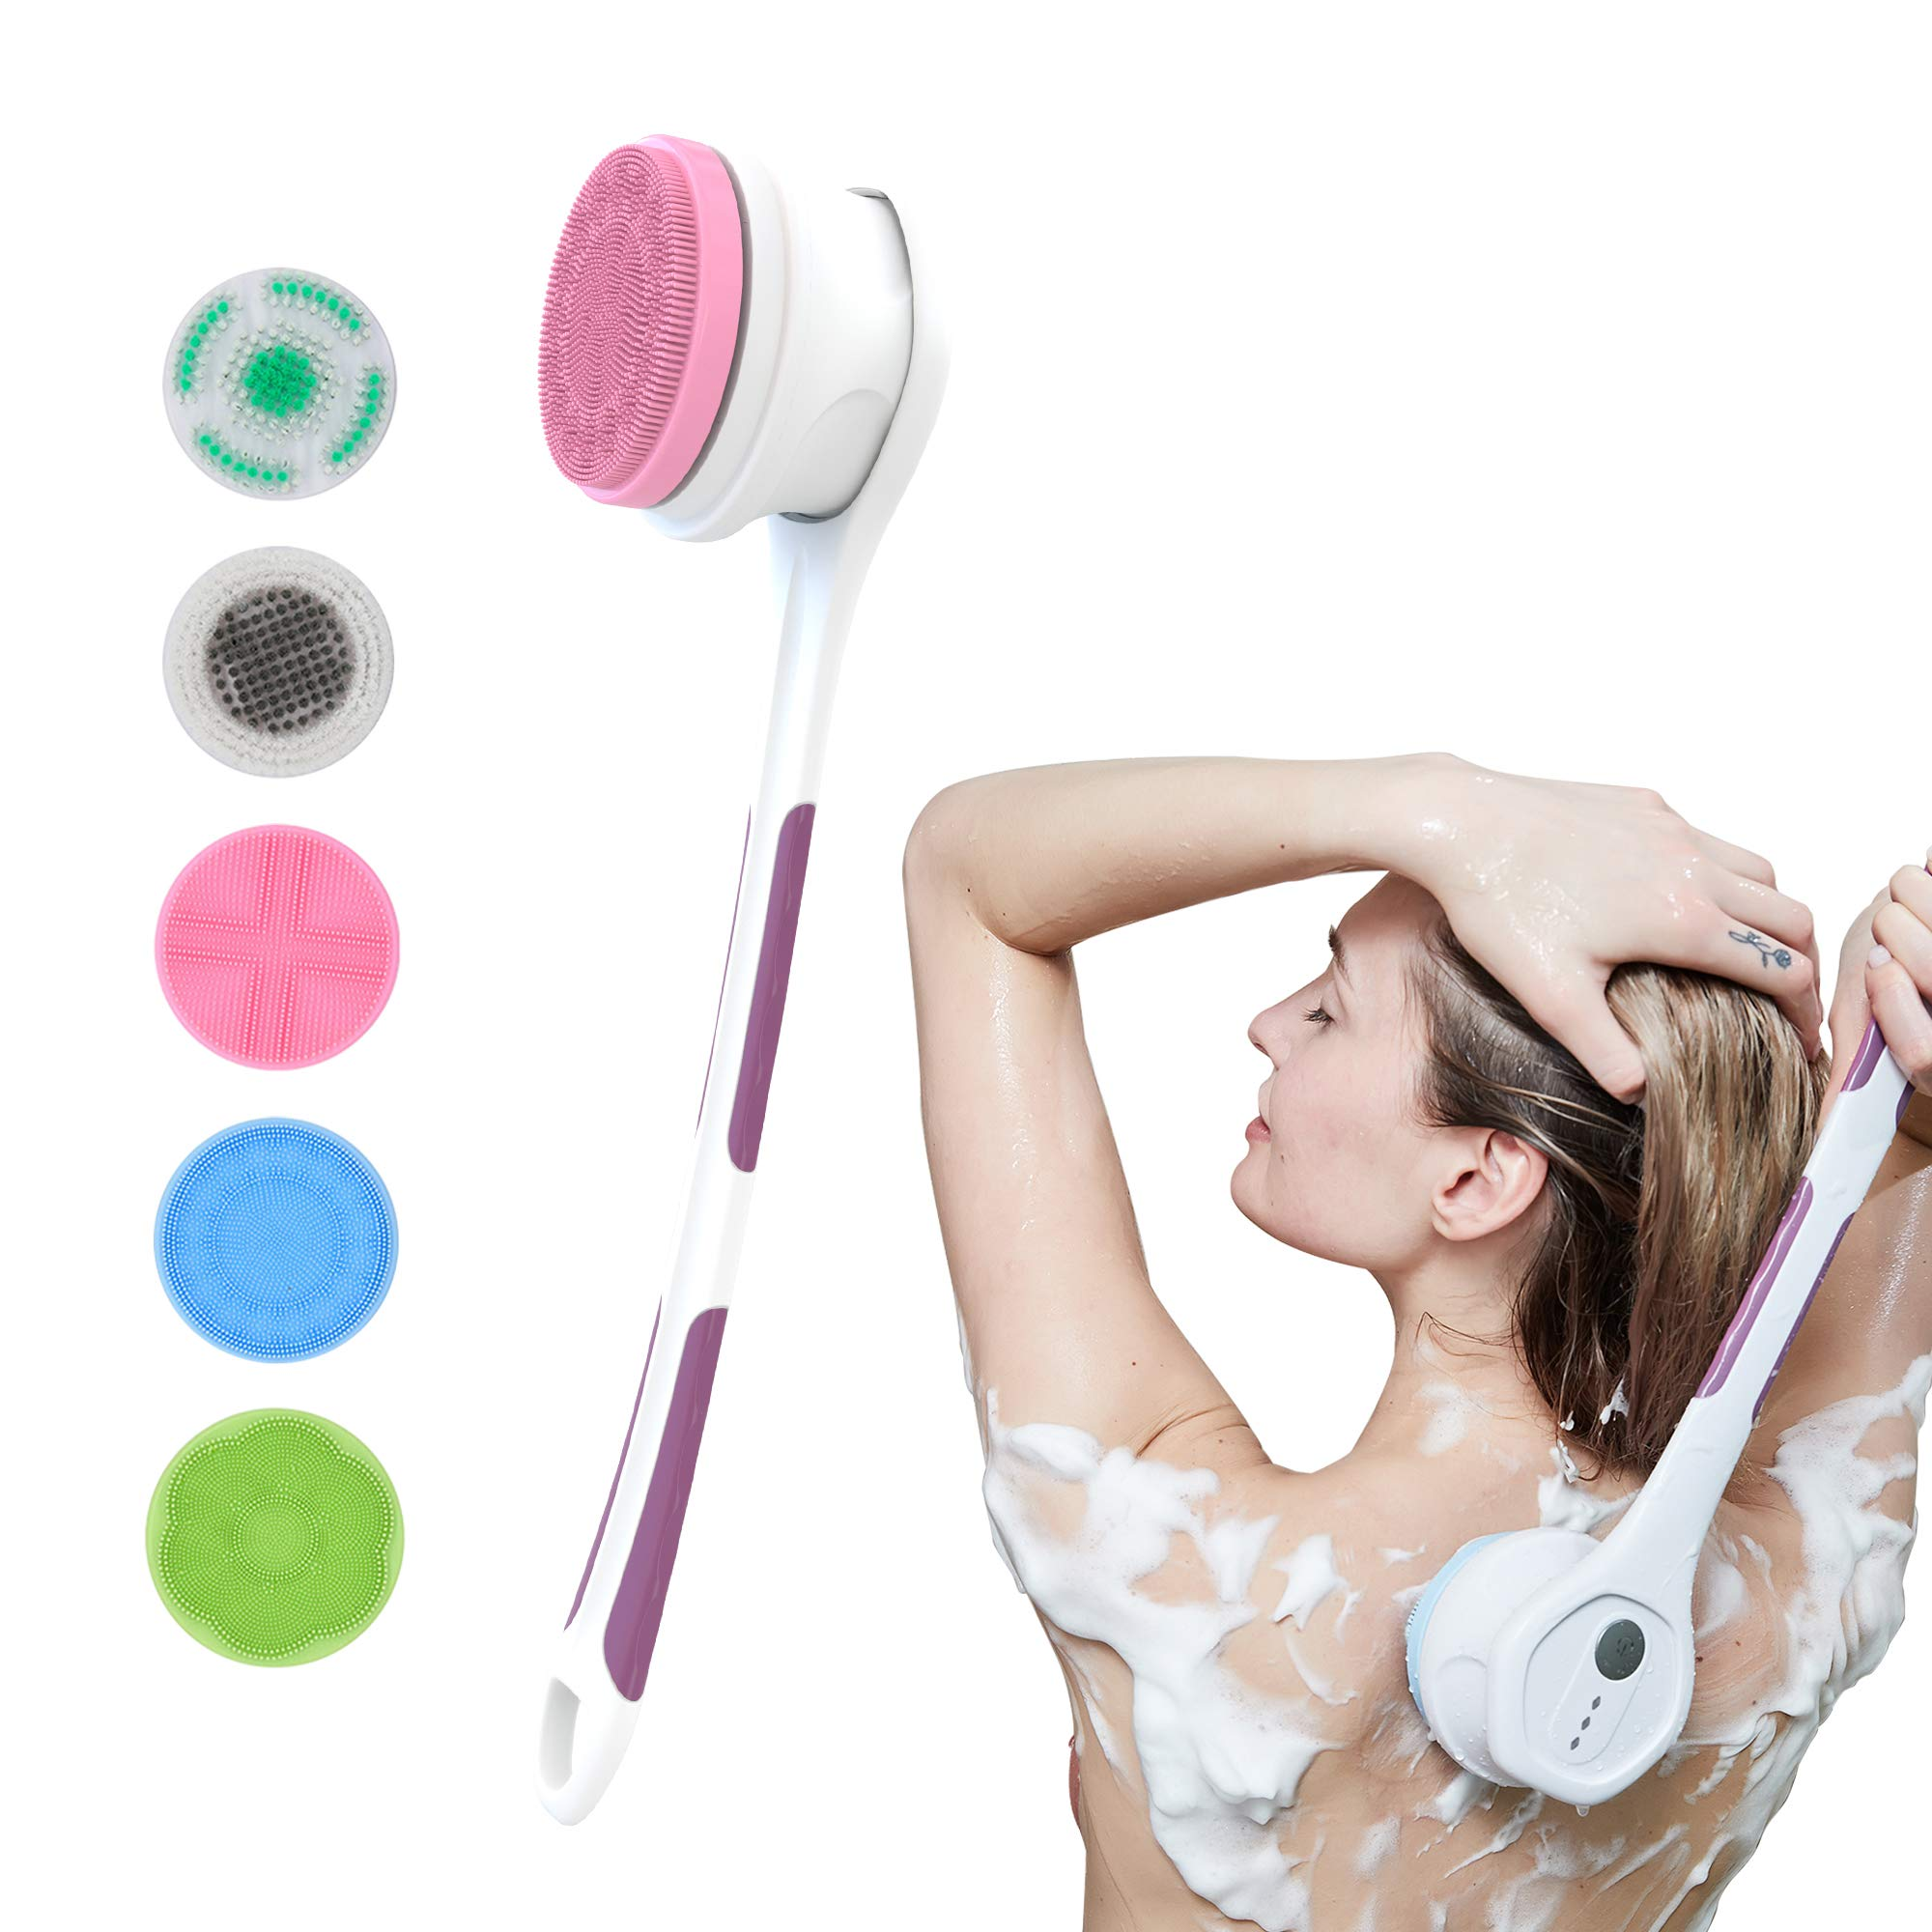 100FIXEO USB Charge Electric Body Bath Brush, Long Handle For Body Scrubbers For Use In Shower With 5 Attachments Rotating Waterproof Facial Cleansing Brush (Purple)